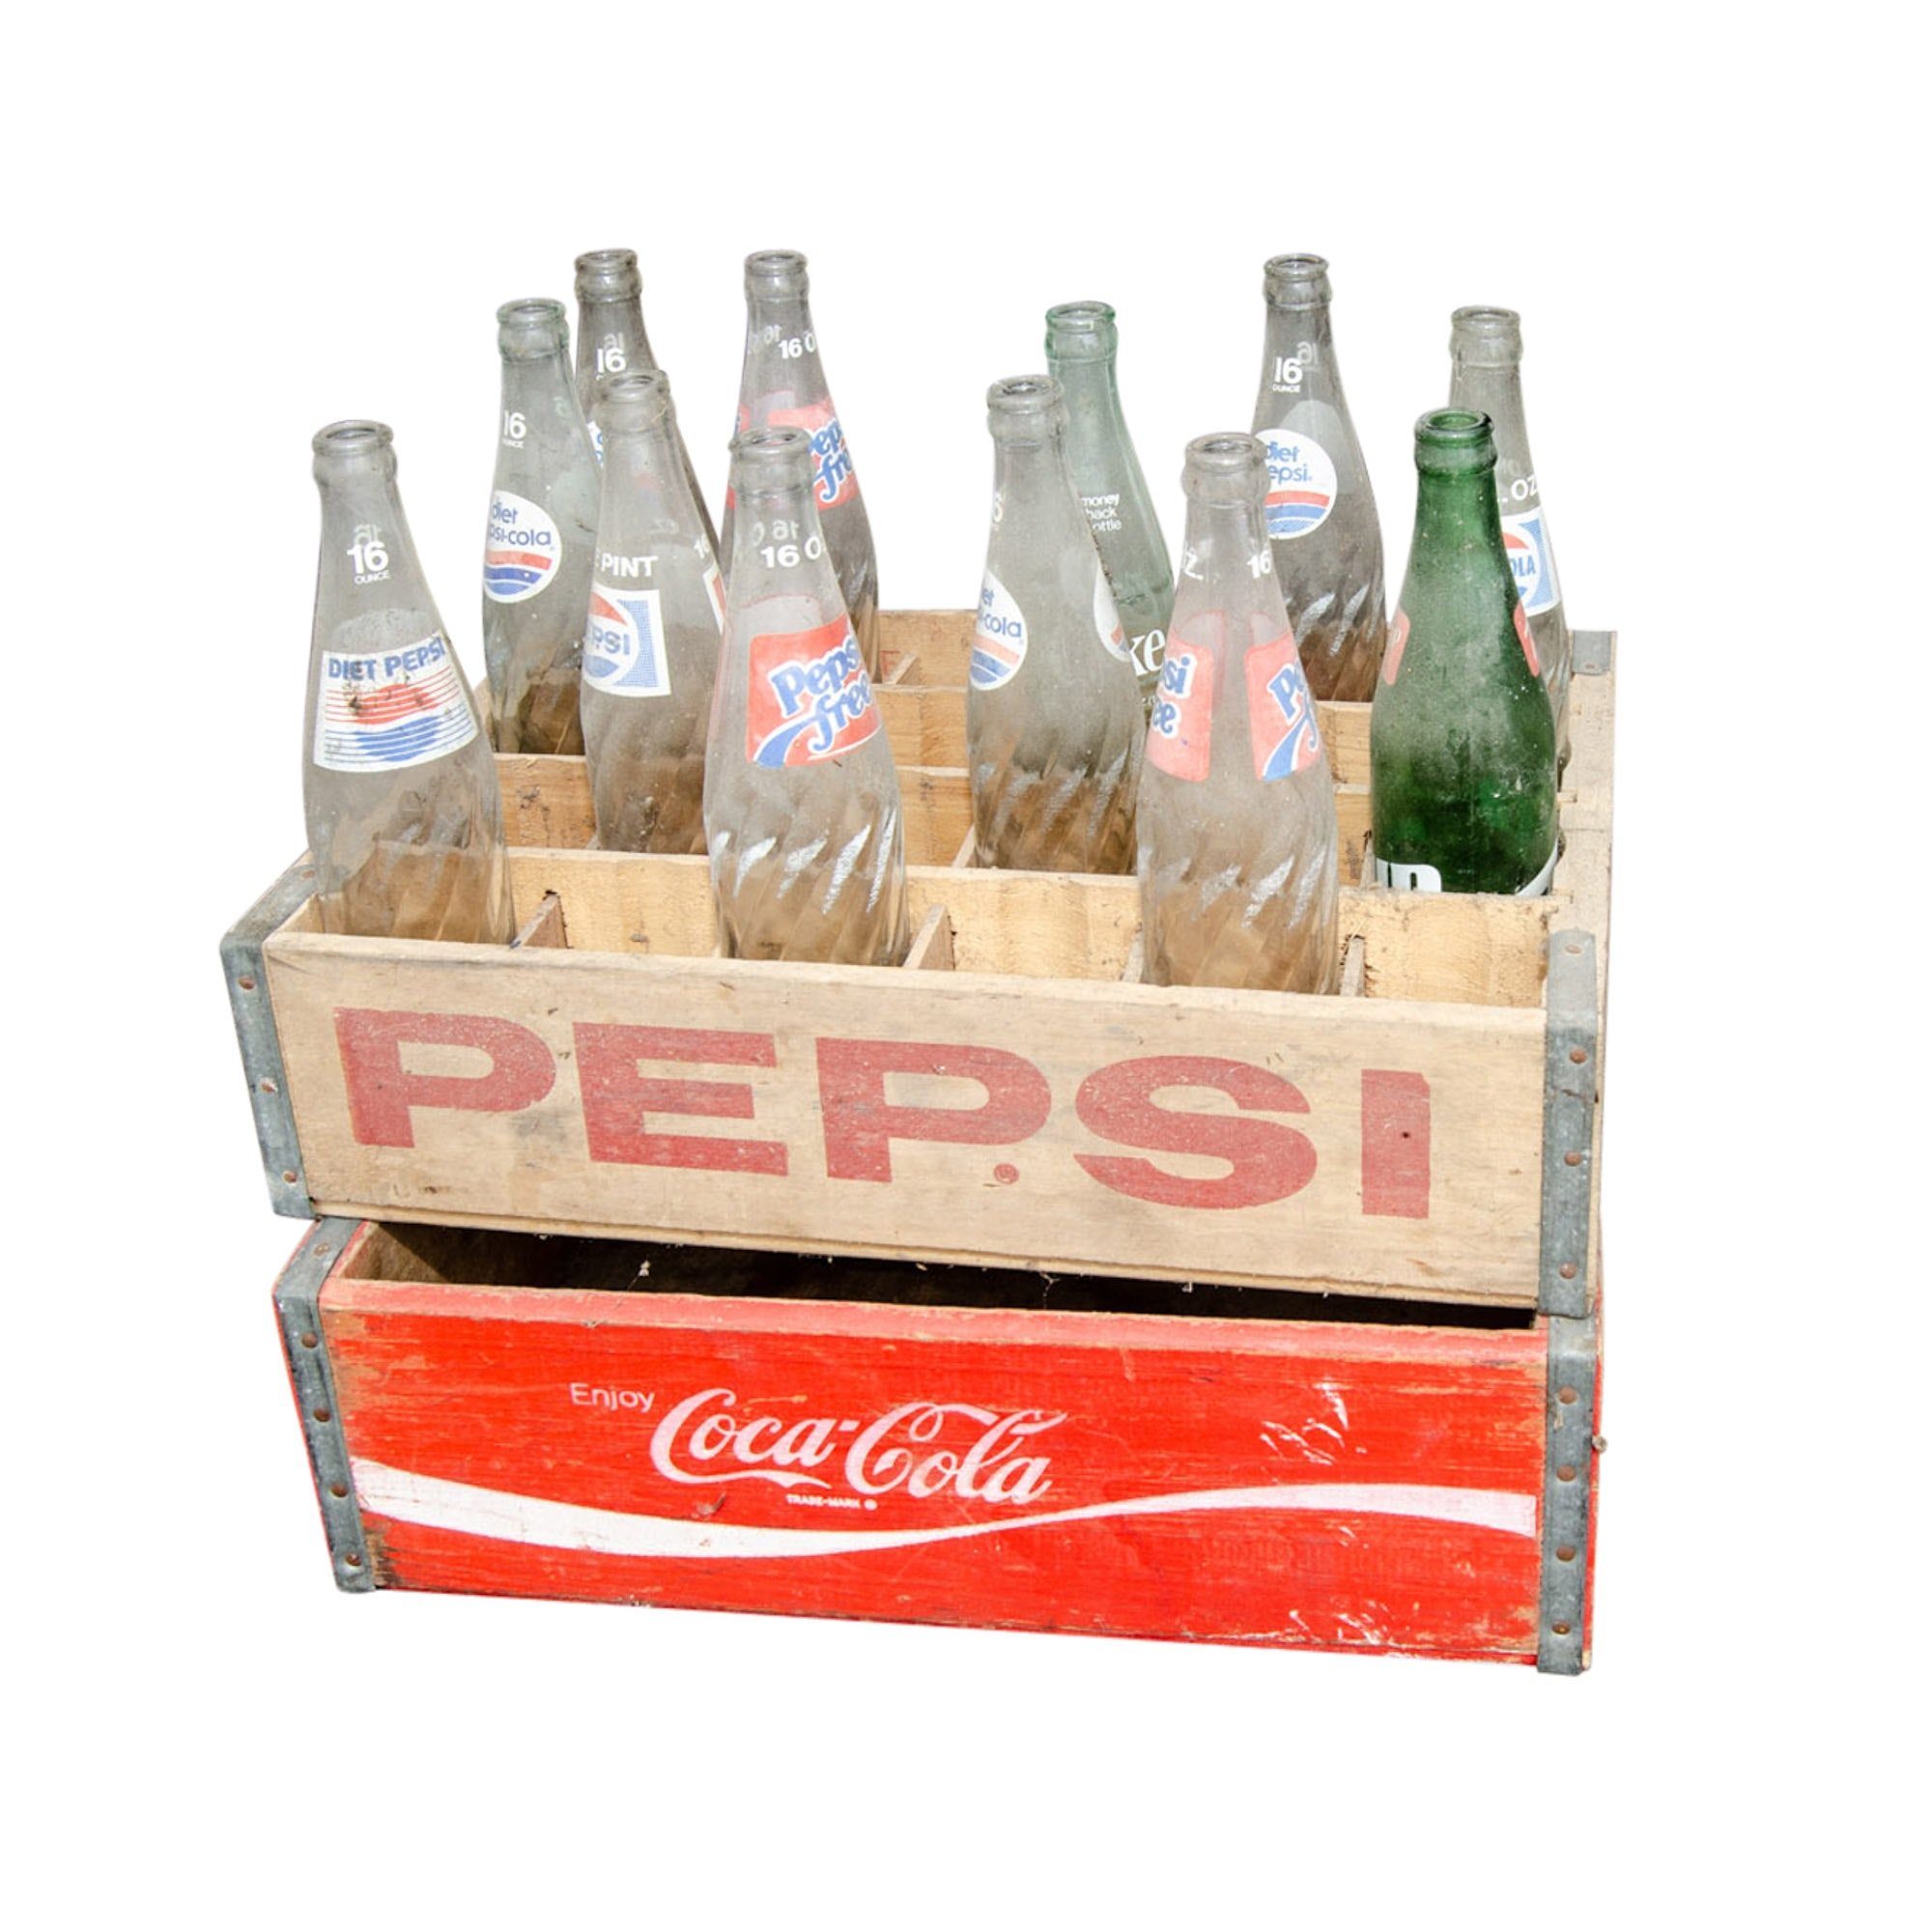 Vintage Soda Pop Bottles and Crates